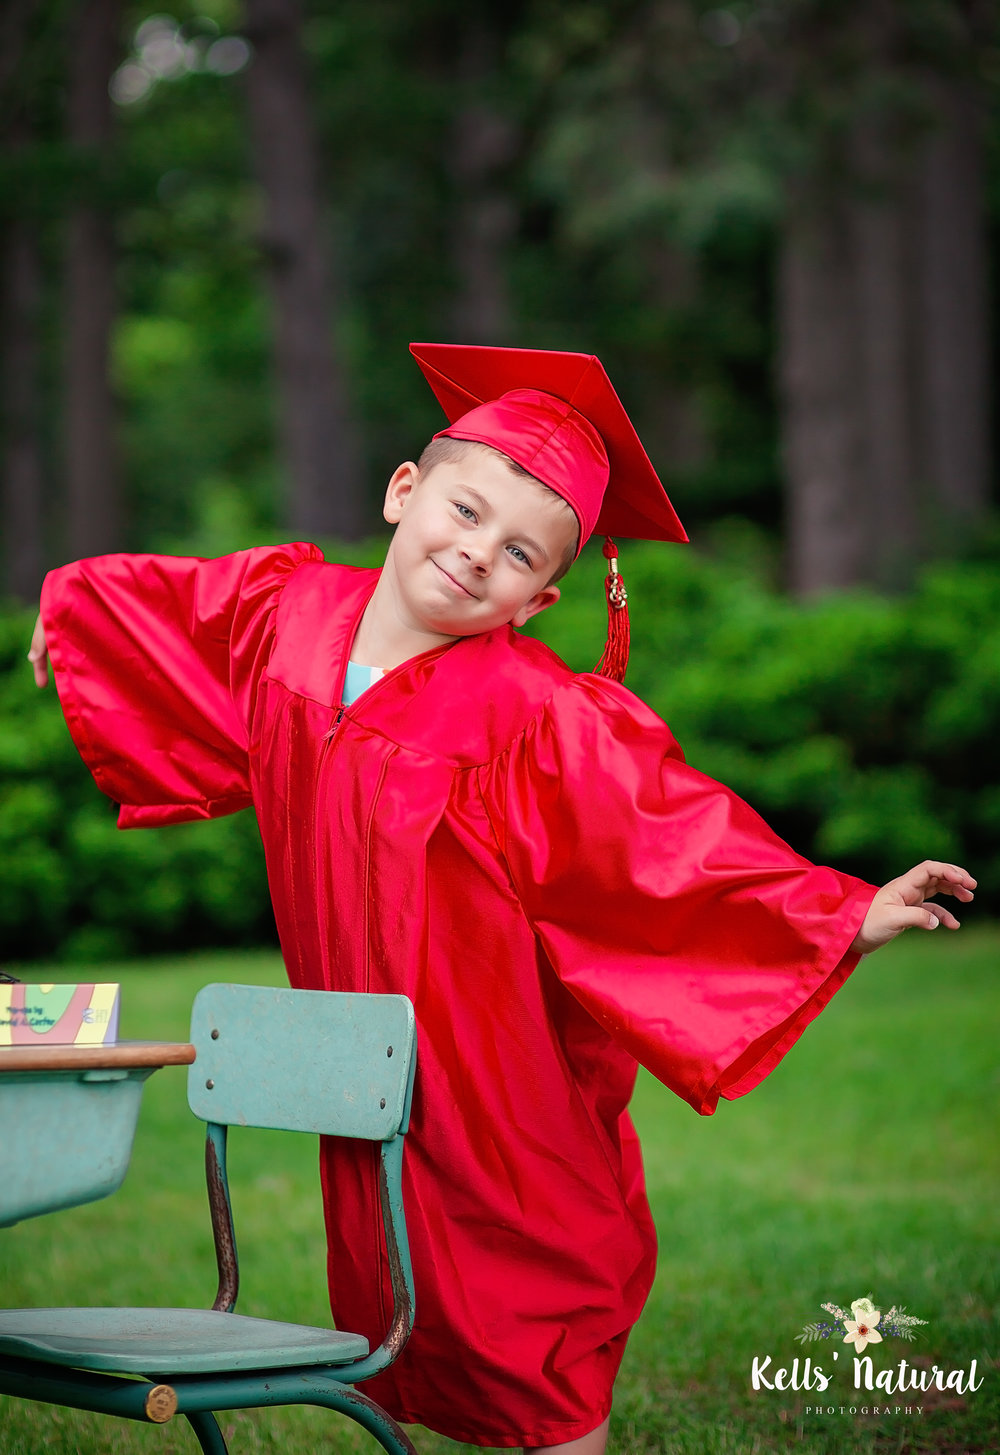 Fun Grad Photo Ideas for Kids.jpg